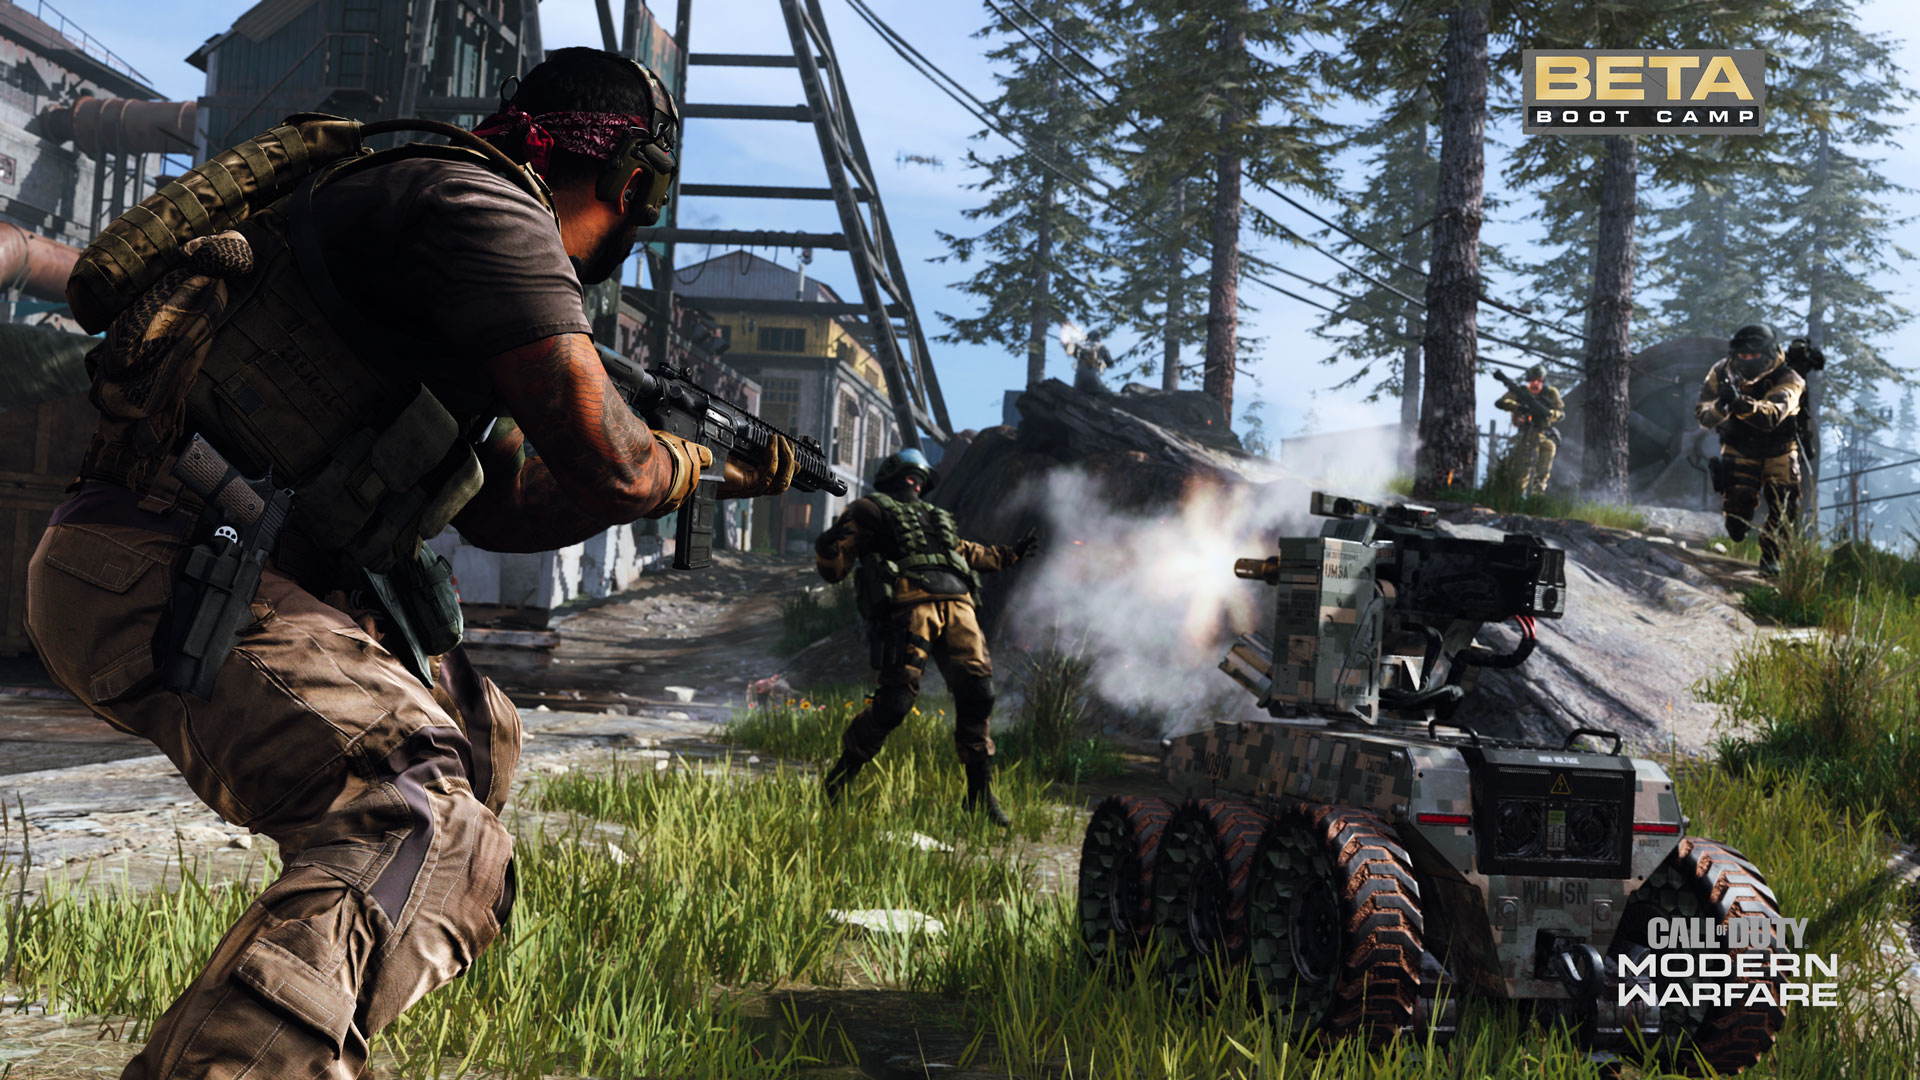 call of duty: modern warfare pc system requirements